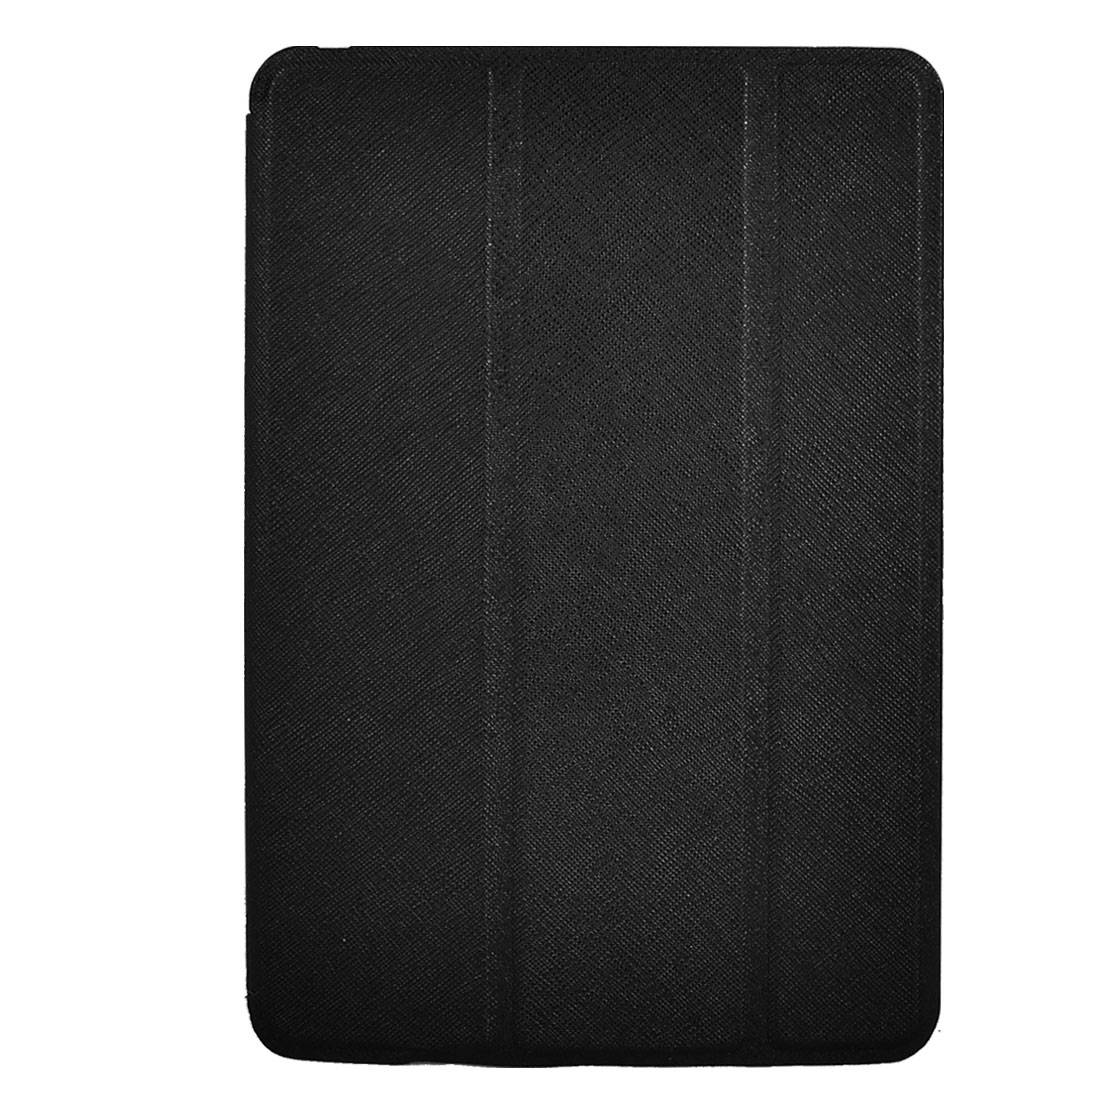 Black Faux Leather Stand Case Cover Pouch Protector for Apple iPad Mini